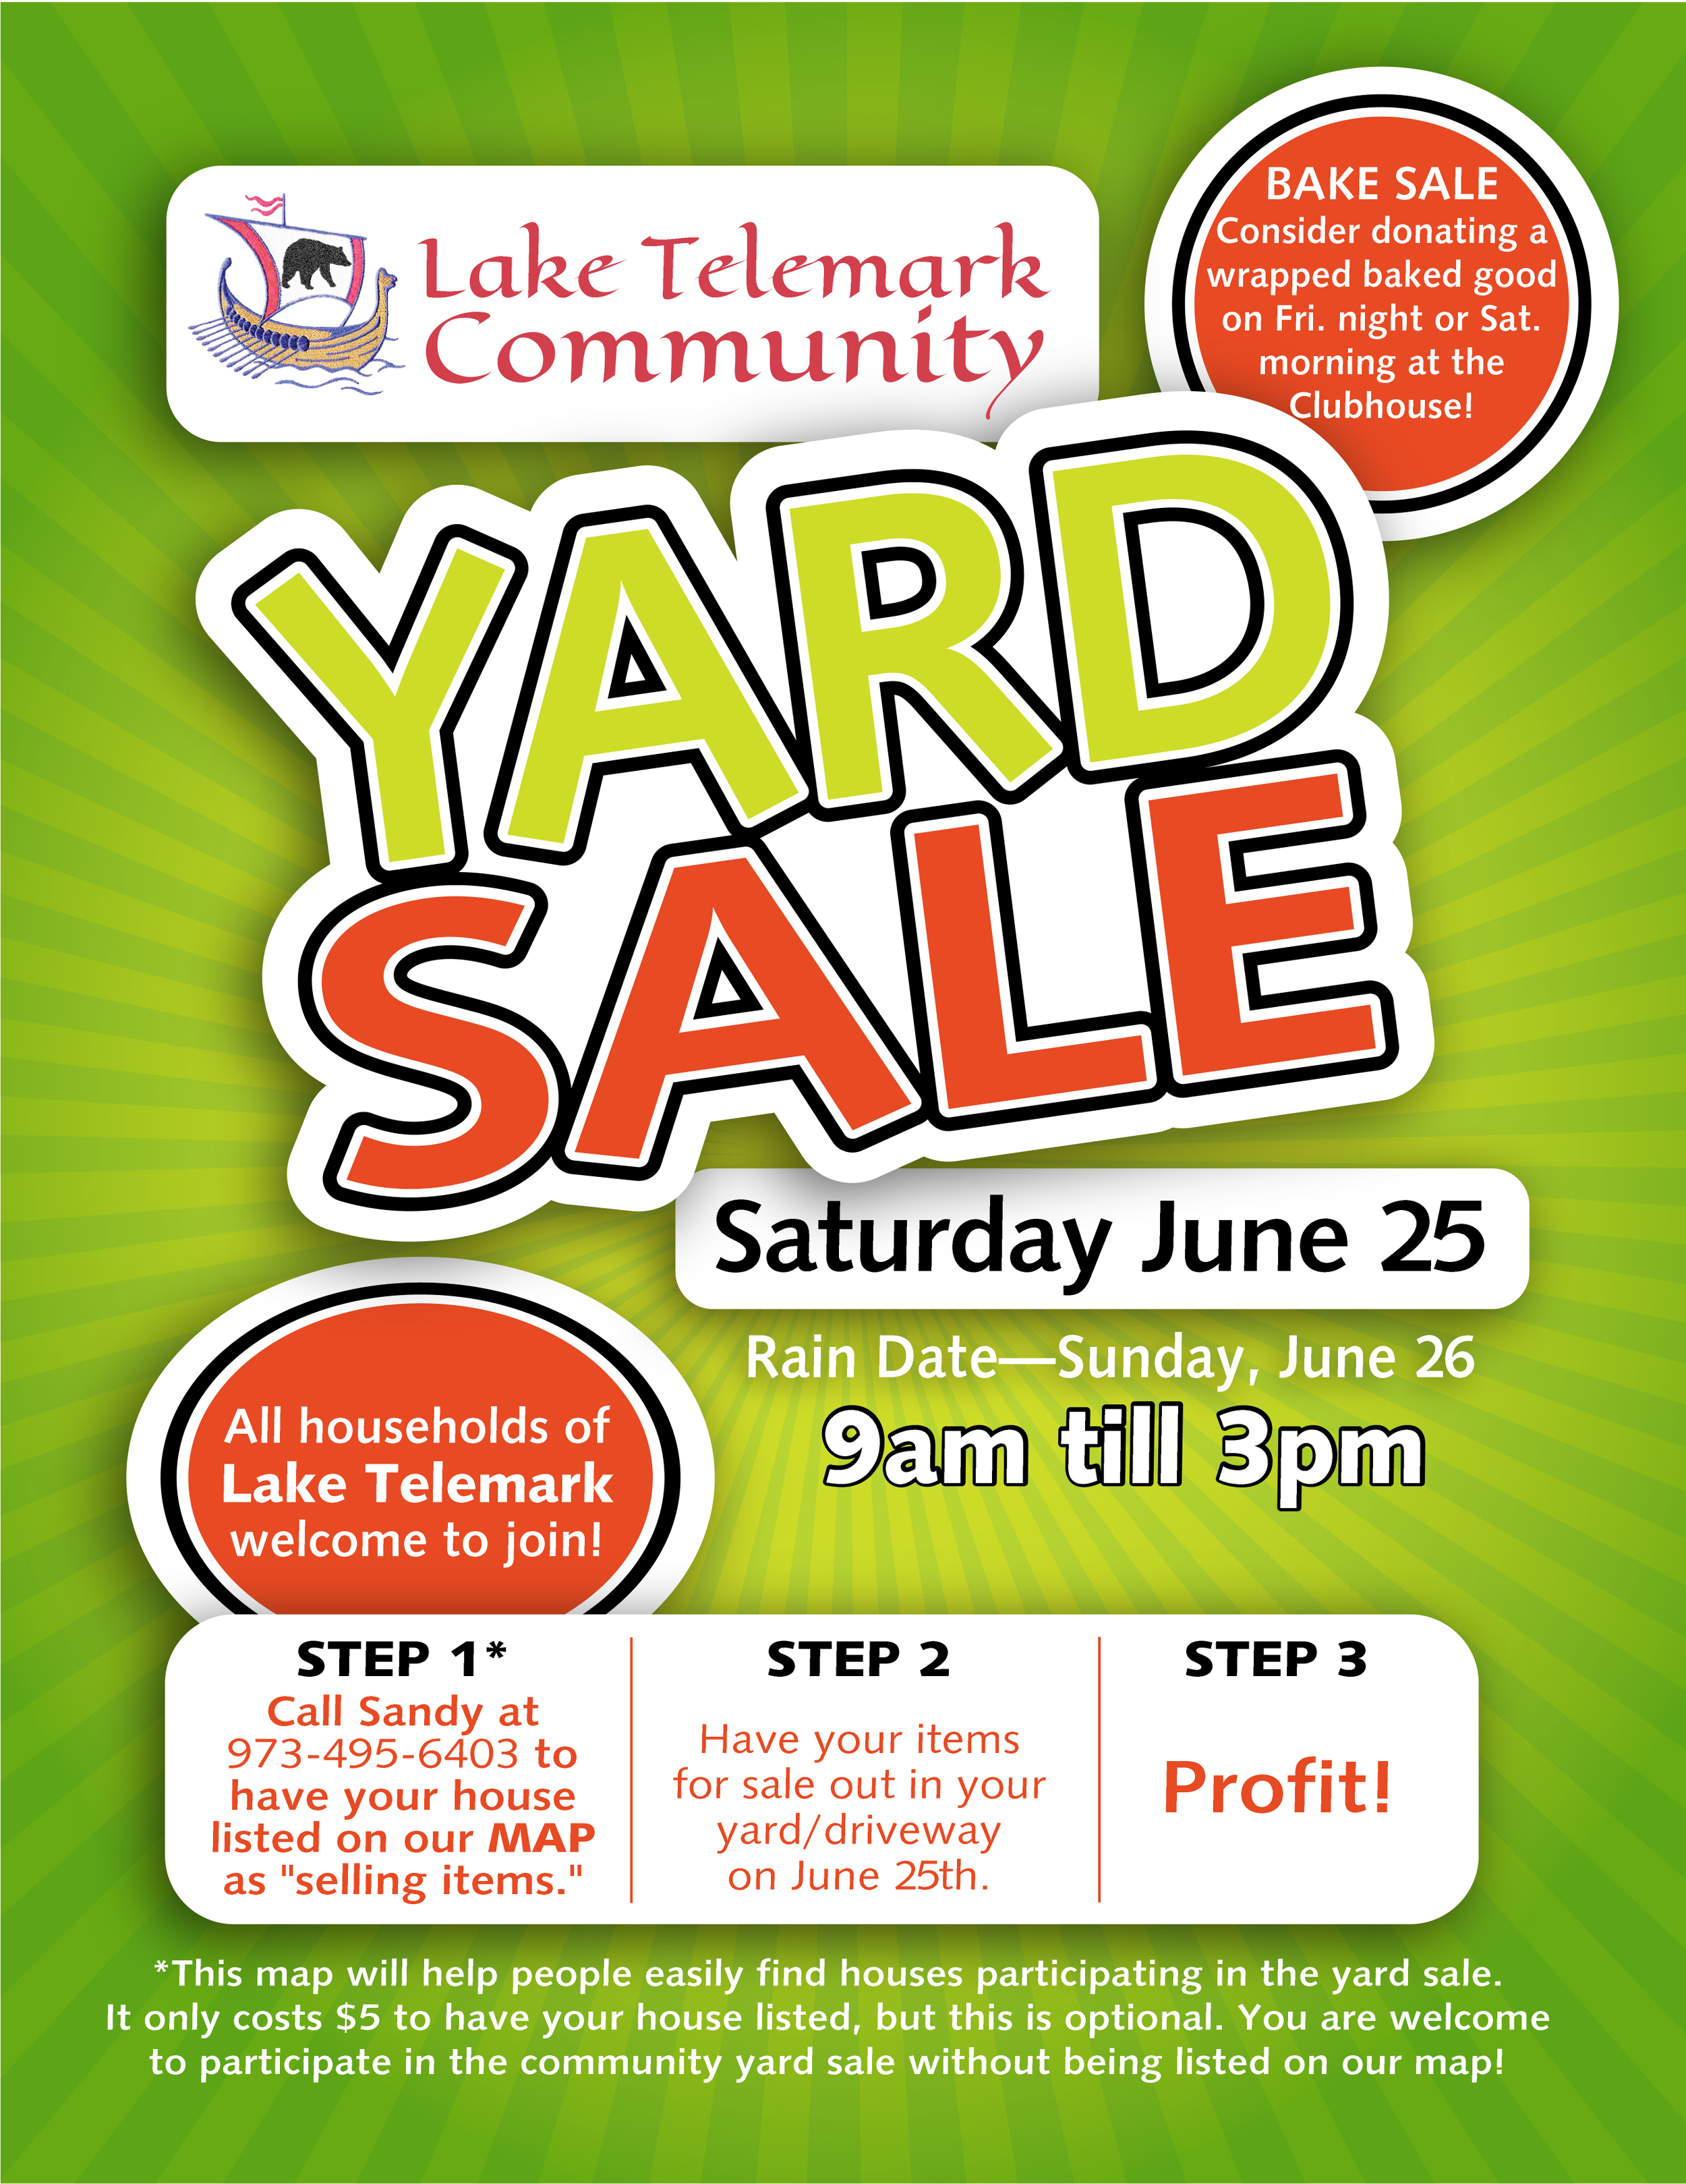 COMMUNITY YARD SALE   Saturday | June 25    All households within Lake Telemark are welcome to participate in this community-wide event. See the flyer below for details or contact us at club@laketelemark.org with questions.    ~MAP~   If you'd like your house featured on a map that will given out to indicate which houses have goods to sell, please contact Sandy at 973-495-6403. This costs $5, and is optional, but highly encouraged.   Regardless, to participate, simply have your goods out in your yard on Saturday, June 13th.    ~WHY PARTICIPATE?~   Individual yard/garage sales rarely draw a lot of traffic. In our case, we will be marketing our community yard sale so that everyone from the surrounding area will know that multiple houses in our community will be selling their items all on the same day like a giant bazaar. You'll get a lot more traffic to your home than if you did this on your own!